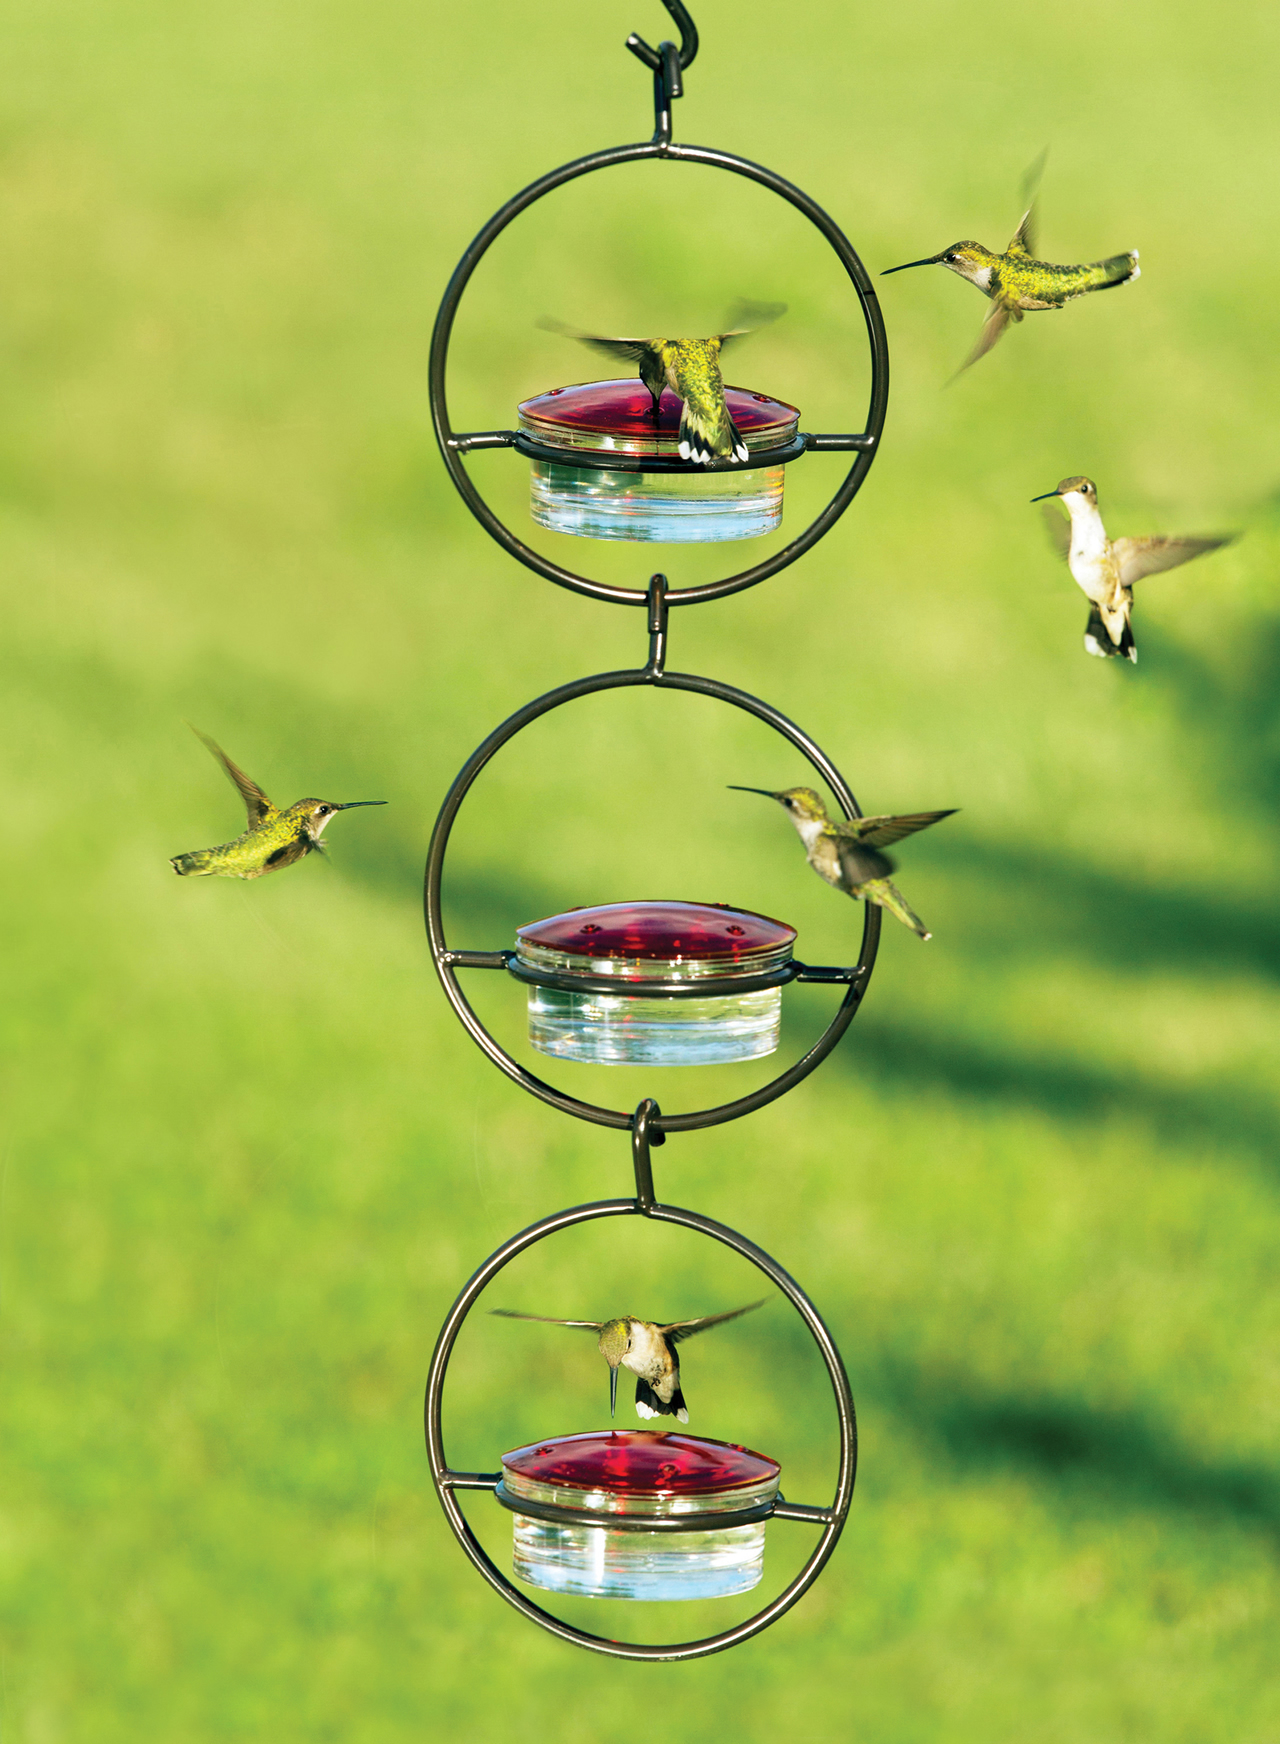 plastic com perkypet strawberry hummingbird perky model us humingbird pet feeder bf